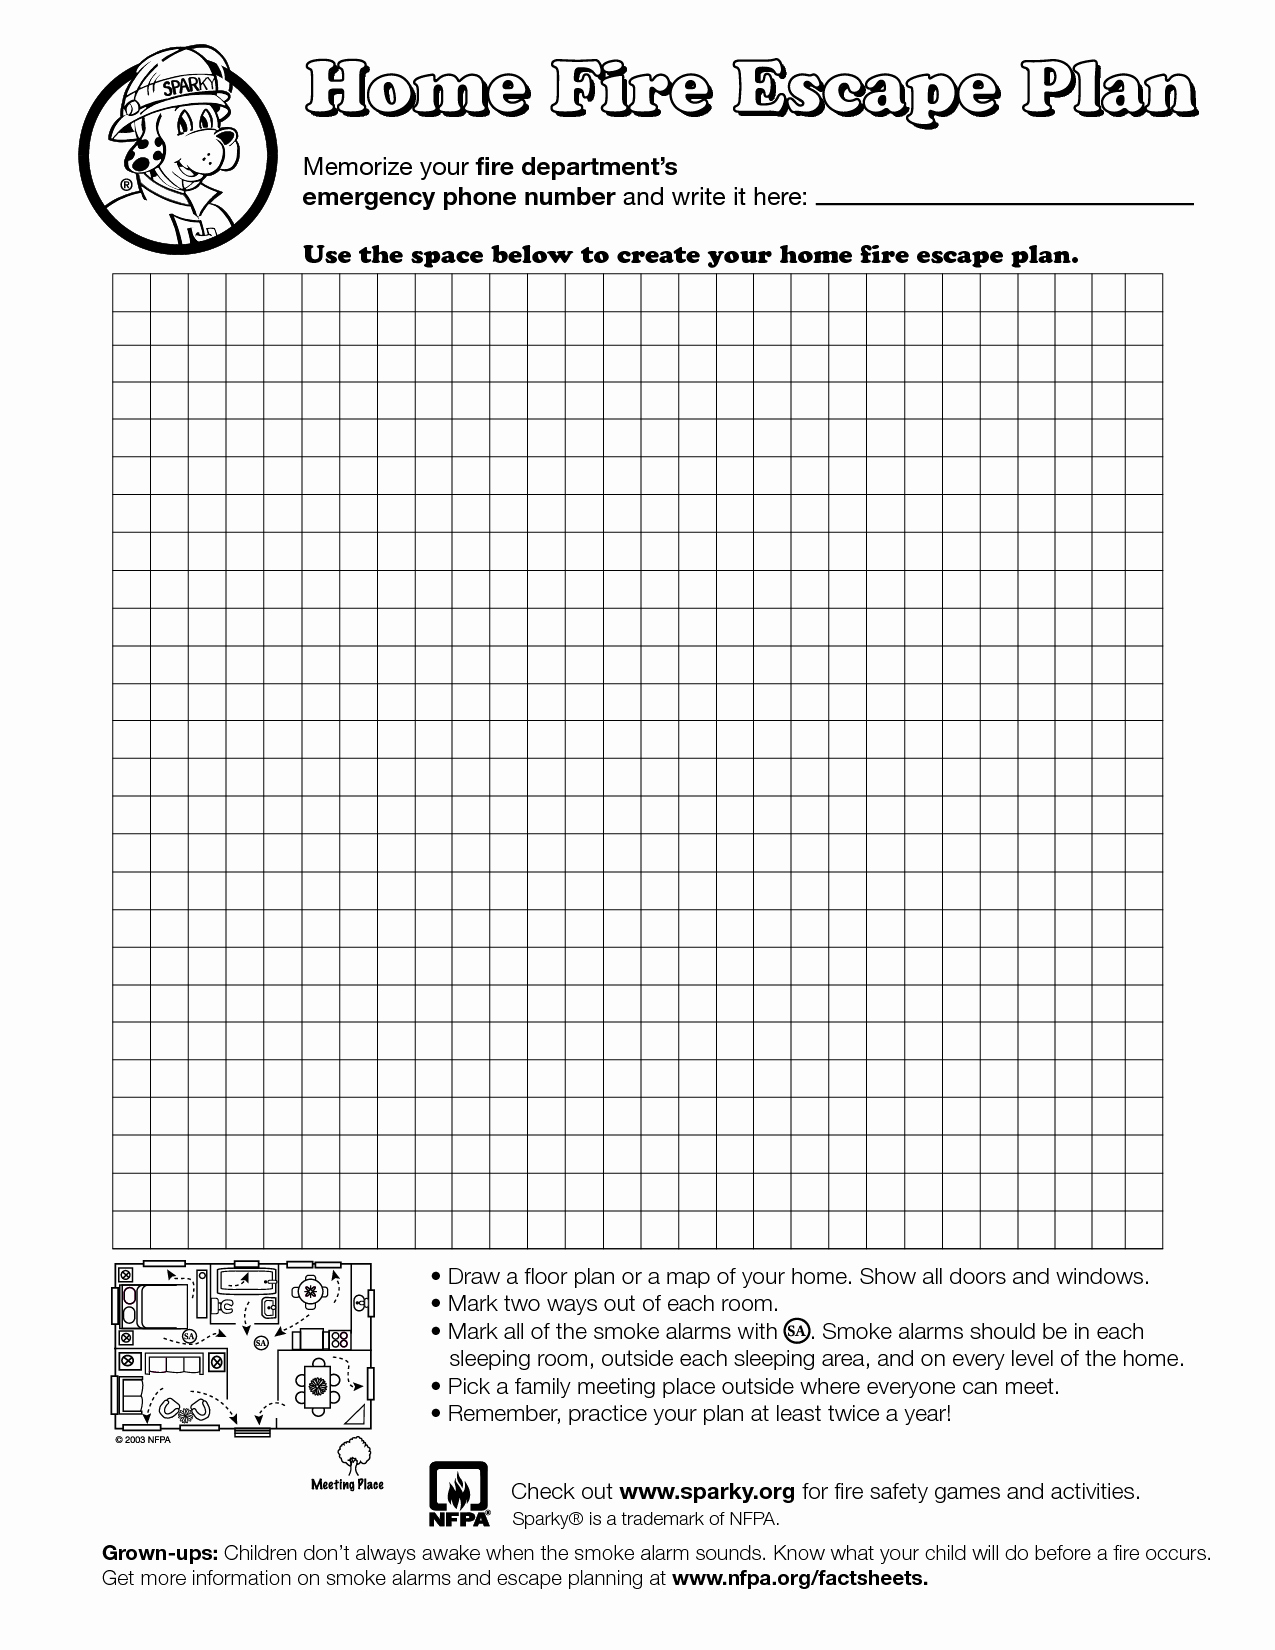 Safety Plan Template for Students Inspirational Home Fire Escape Plan Template Education